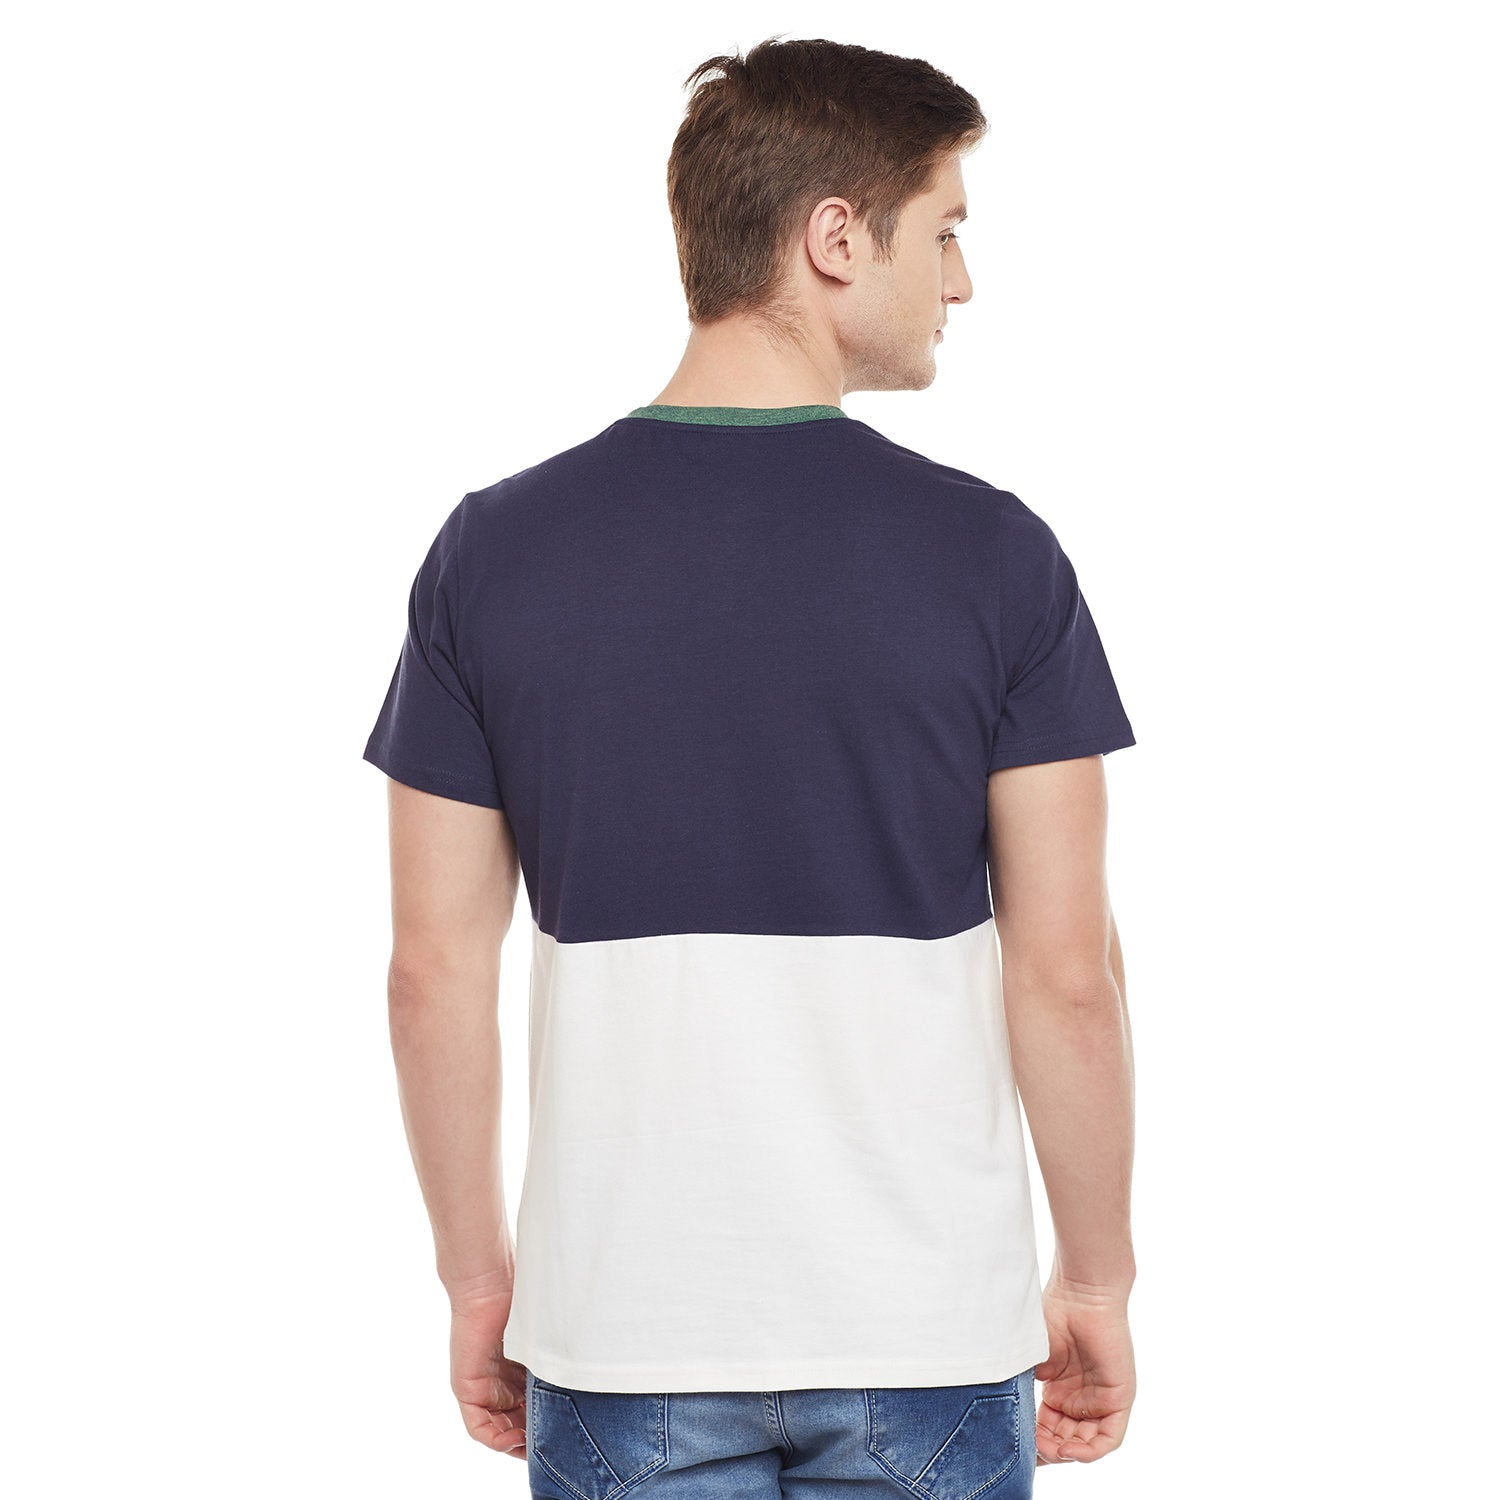 Atorse Half Sleeve Cut N Sewn T-Shirt With Colour Blocking Details